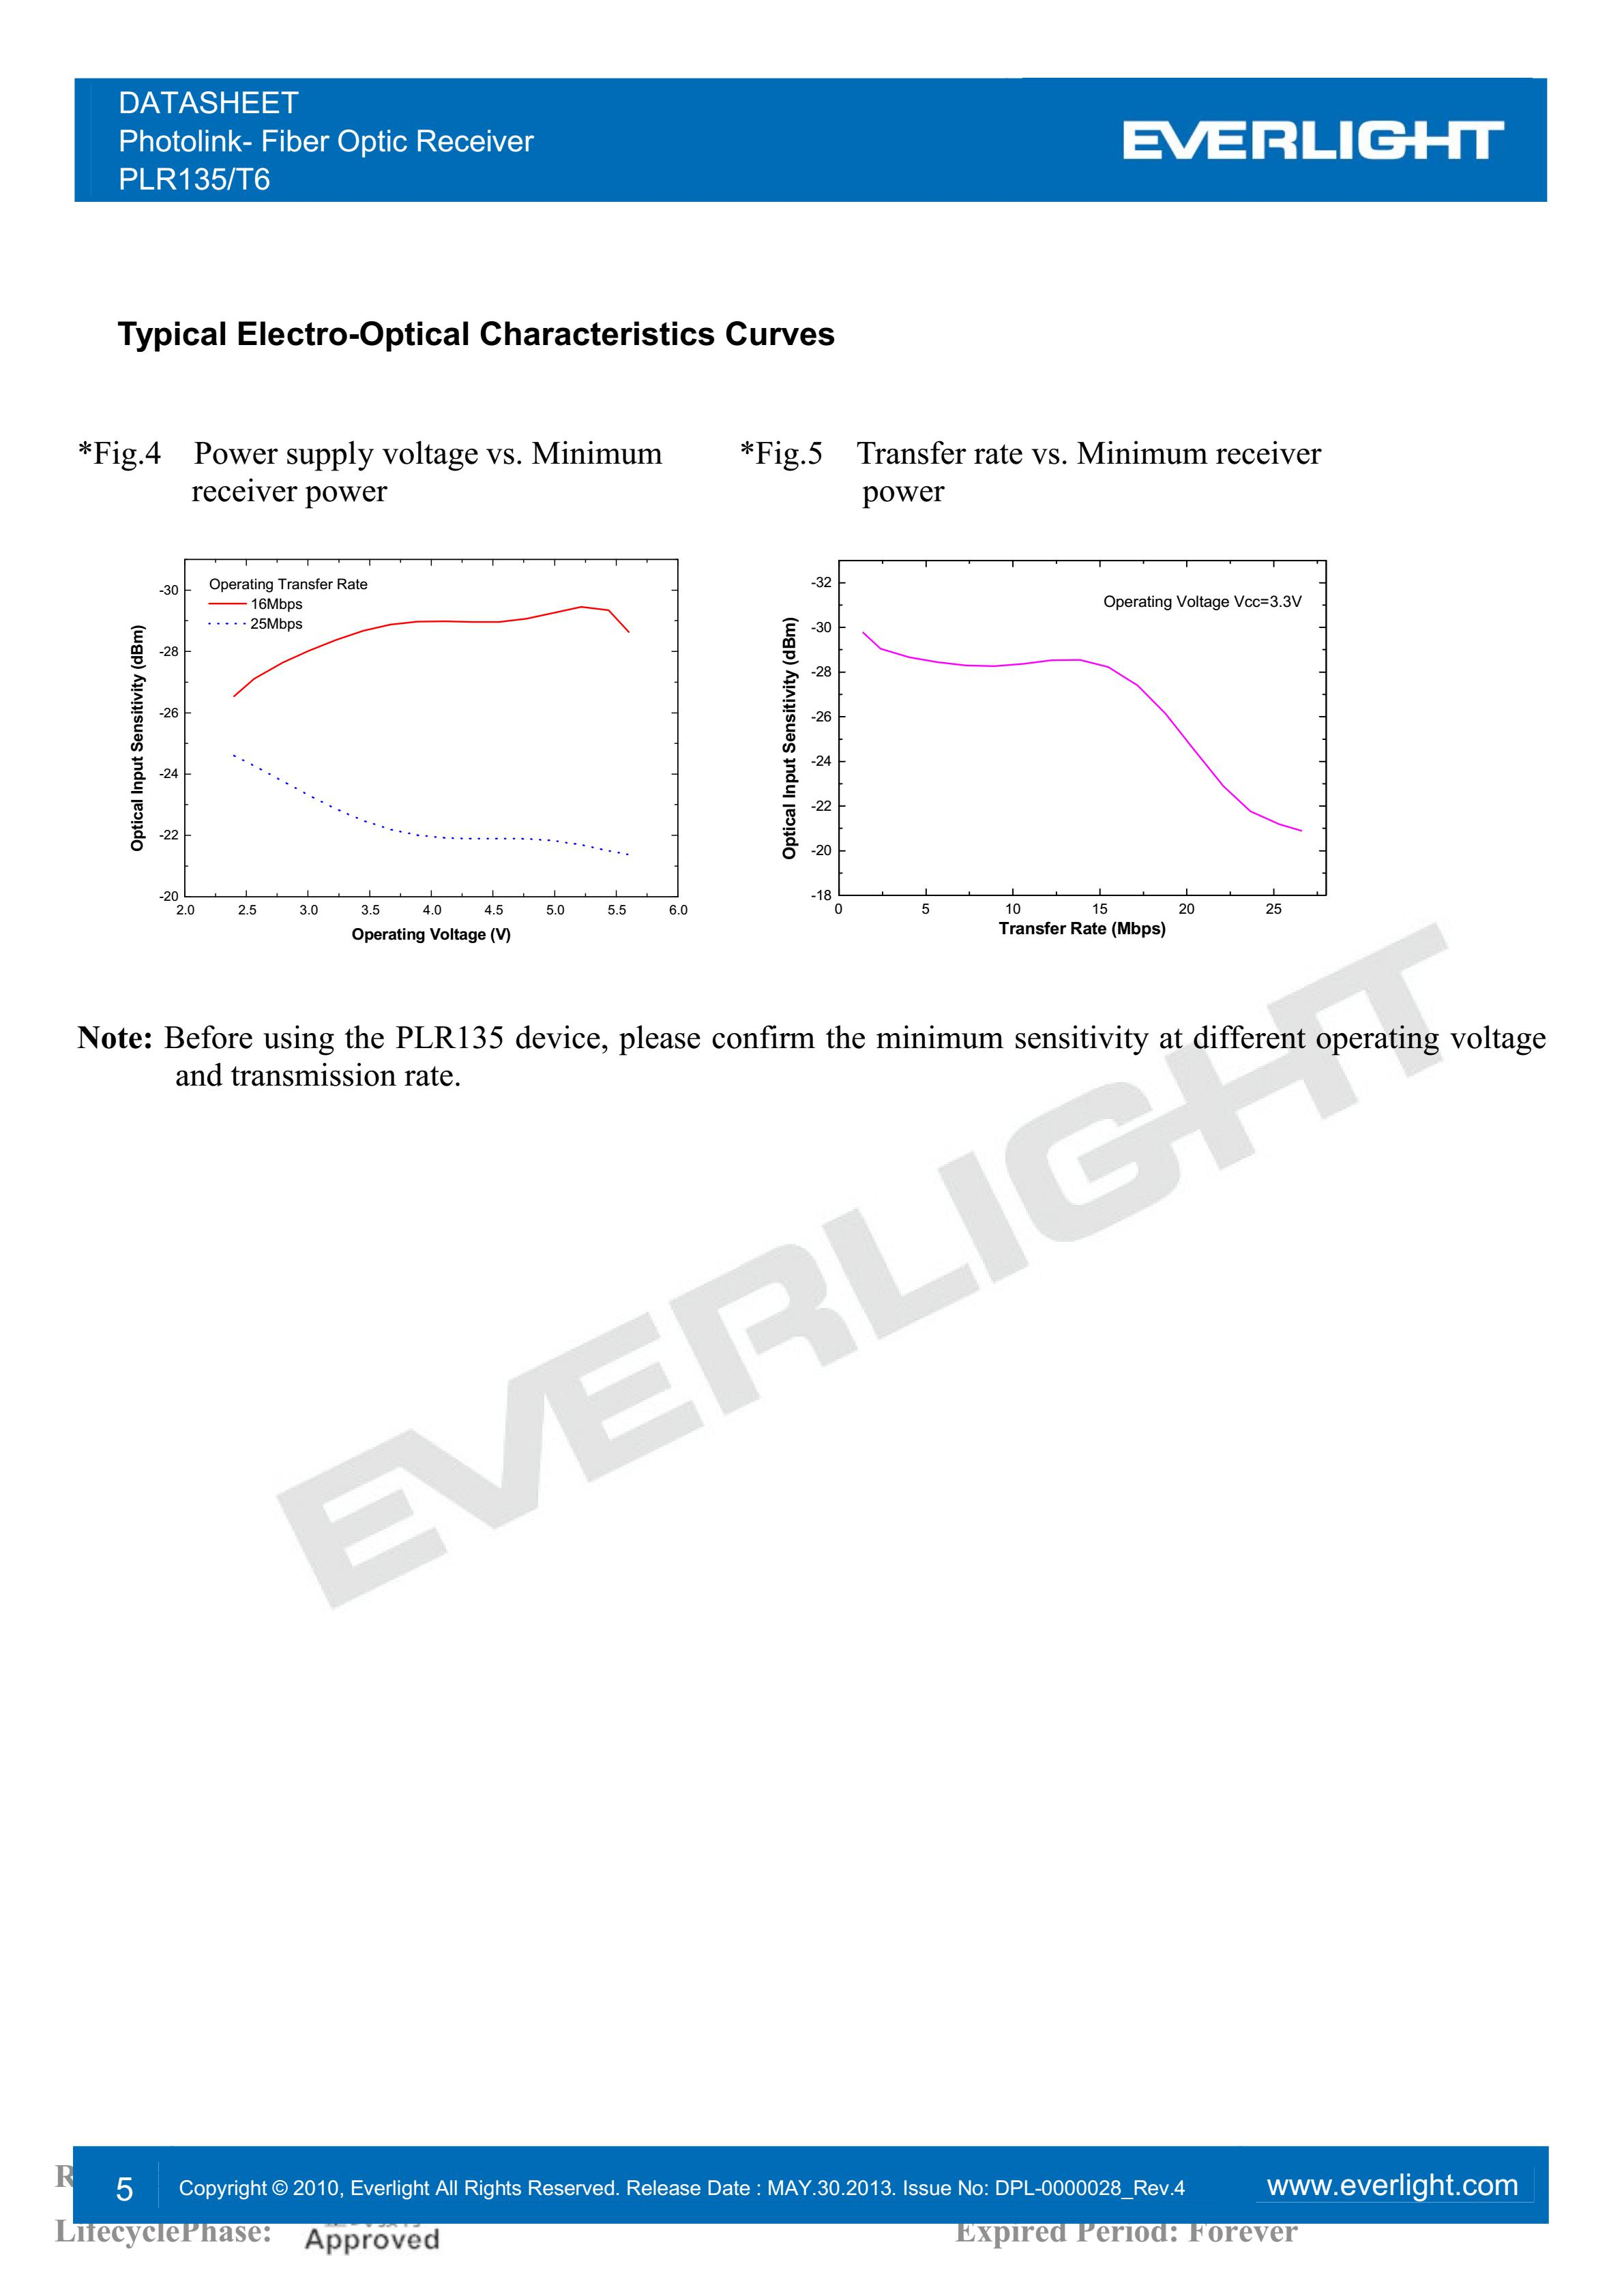 everlight PLR135/T6 Photolink- Fiber Optic Receiver Datasheet